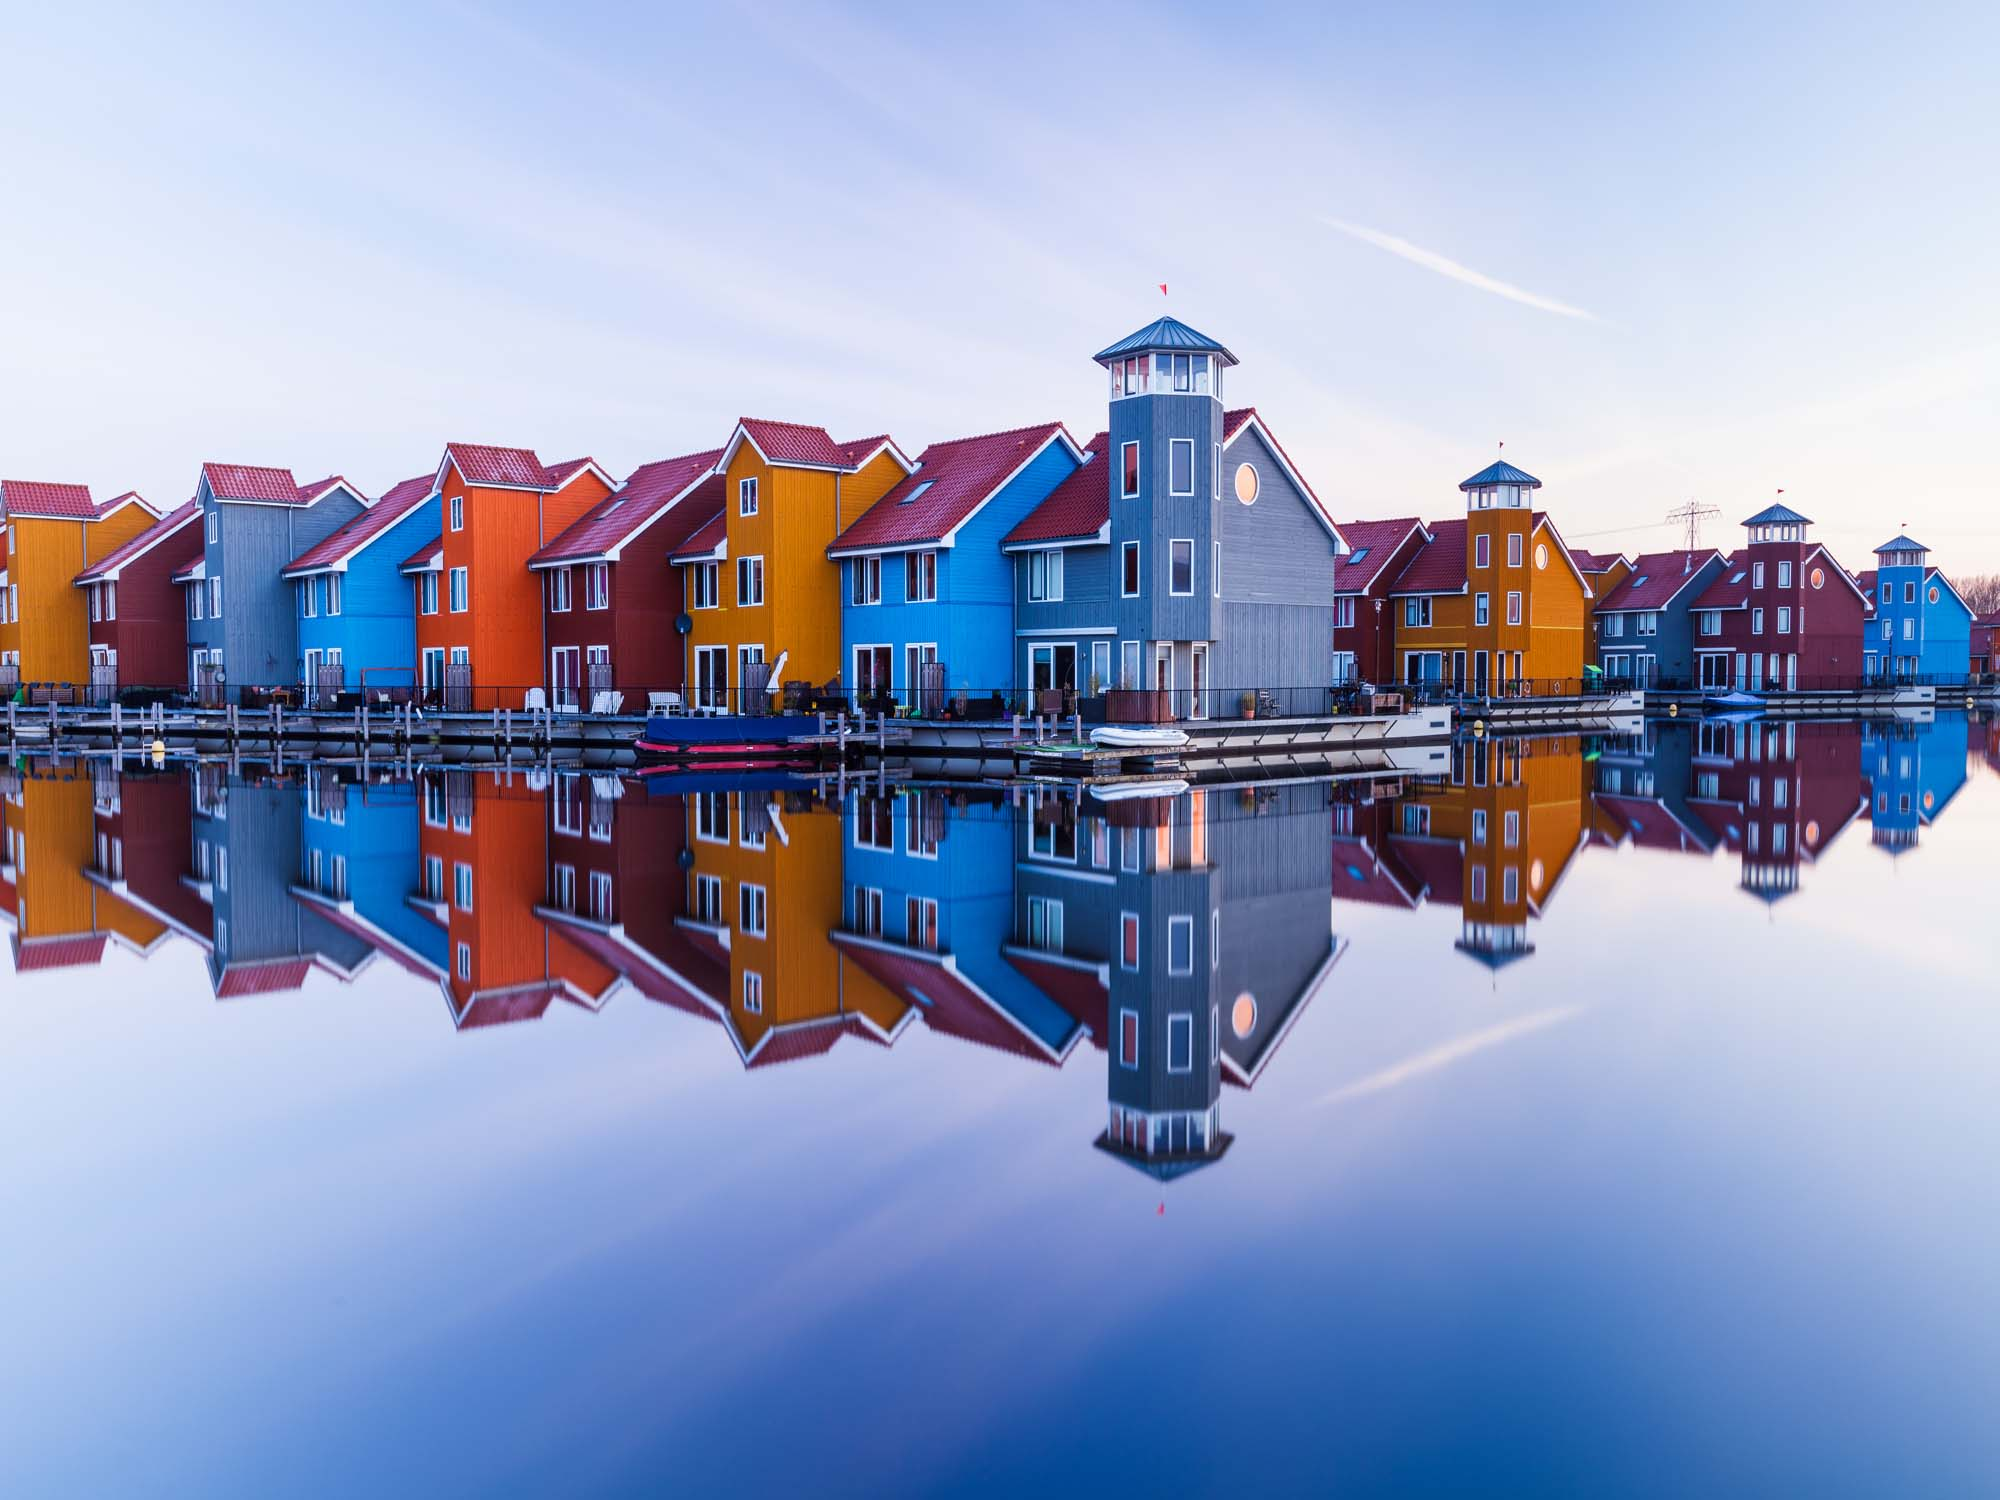 Colored Homes by Ton Drijfhamer